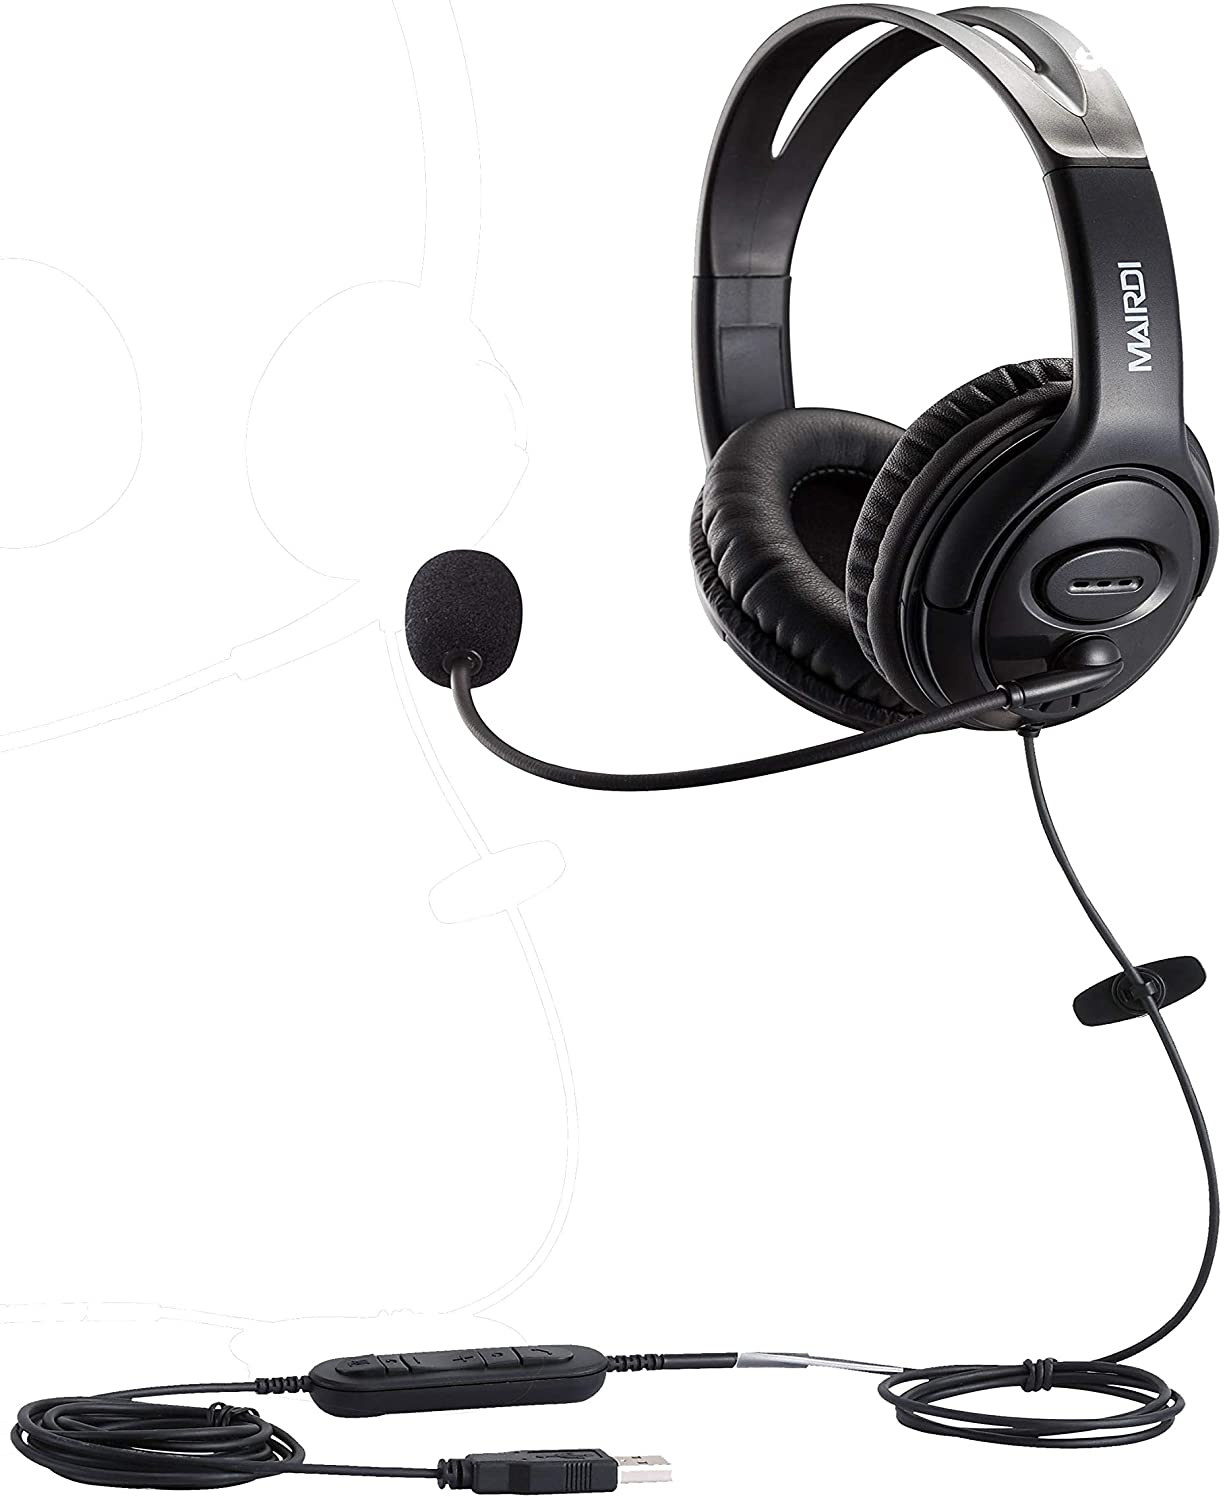 Video Conference Calls Headset with Microphone USB for PC Computer Zoom Skype Call Center Lightweight Headphones with mic Boom Laptop